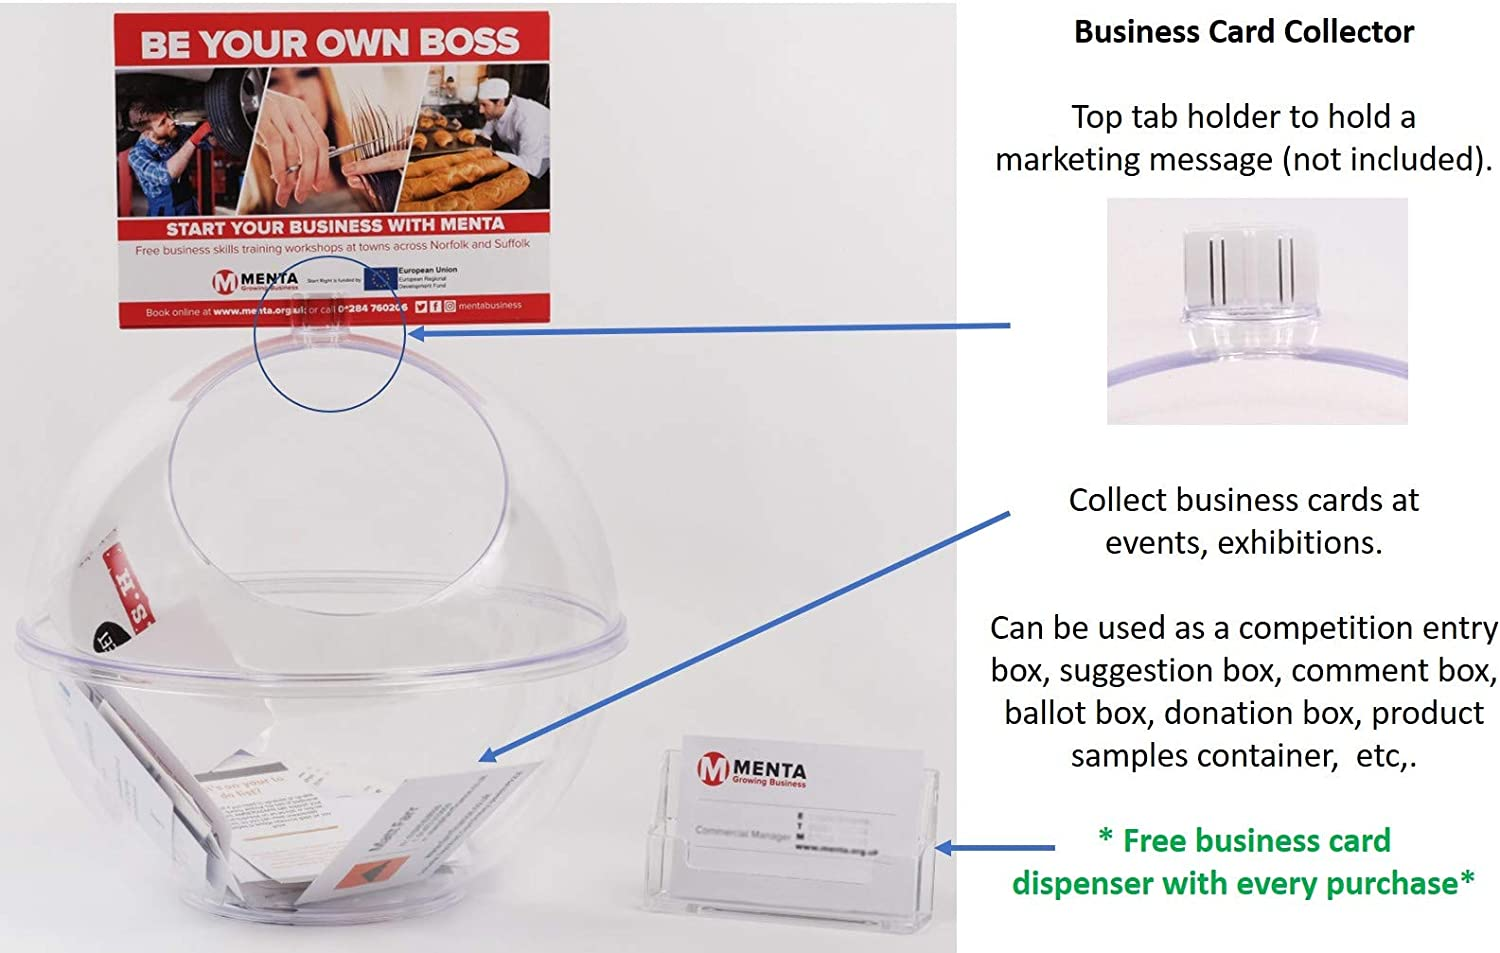 Sweets Dispenser Plus Business Card Holder Suggestion Box Business Card Collector 100/% Recyclable Exhibition Competition Box Donation Box Ballot Box